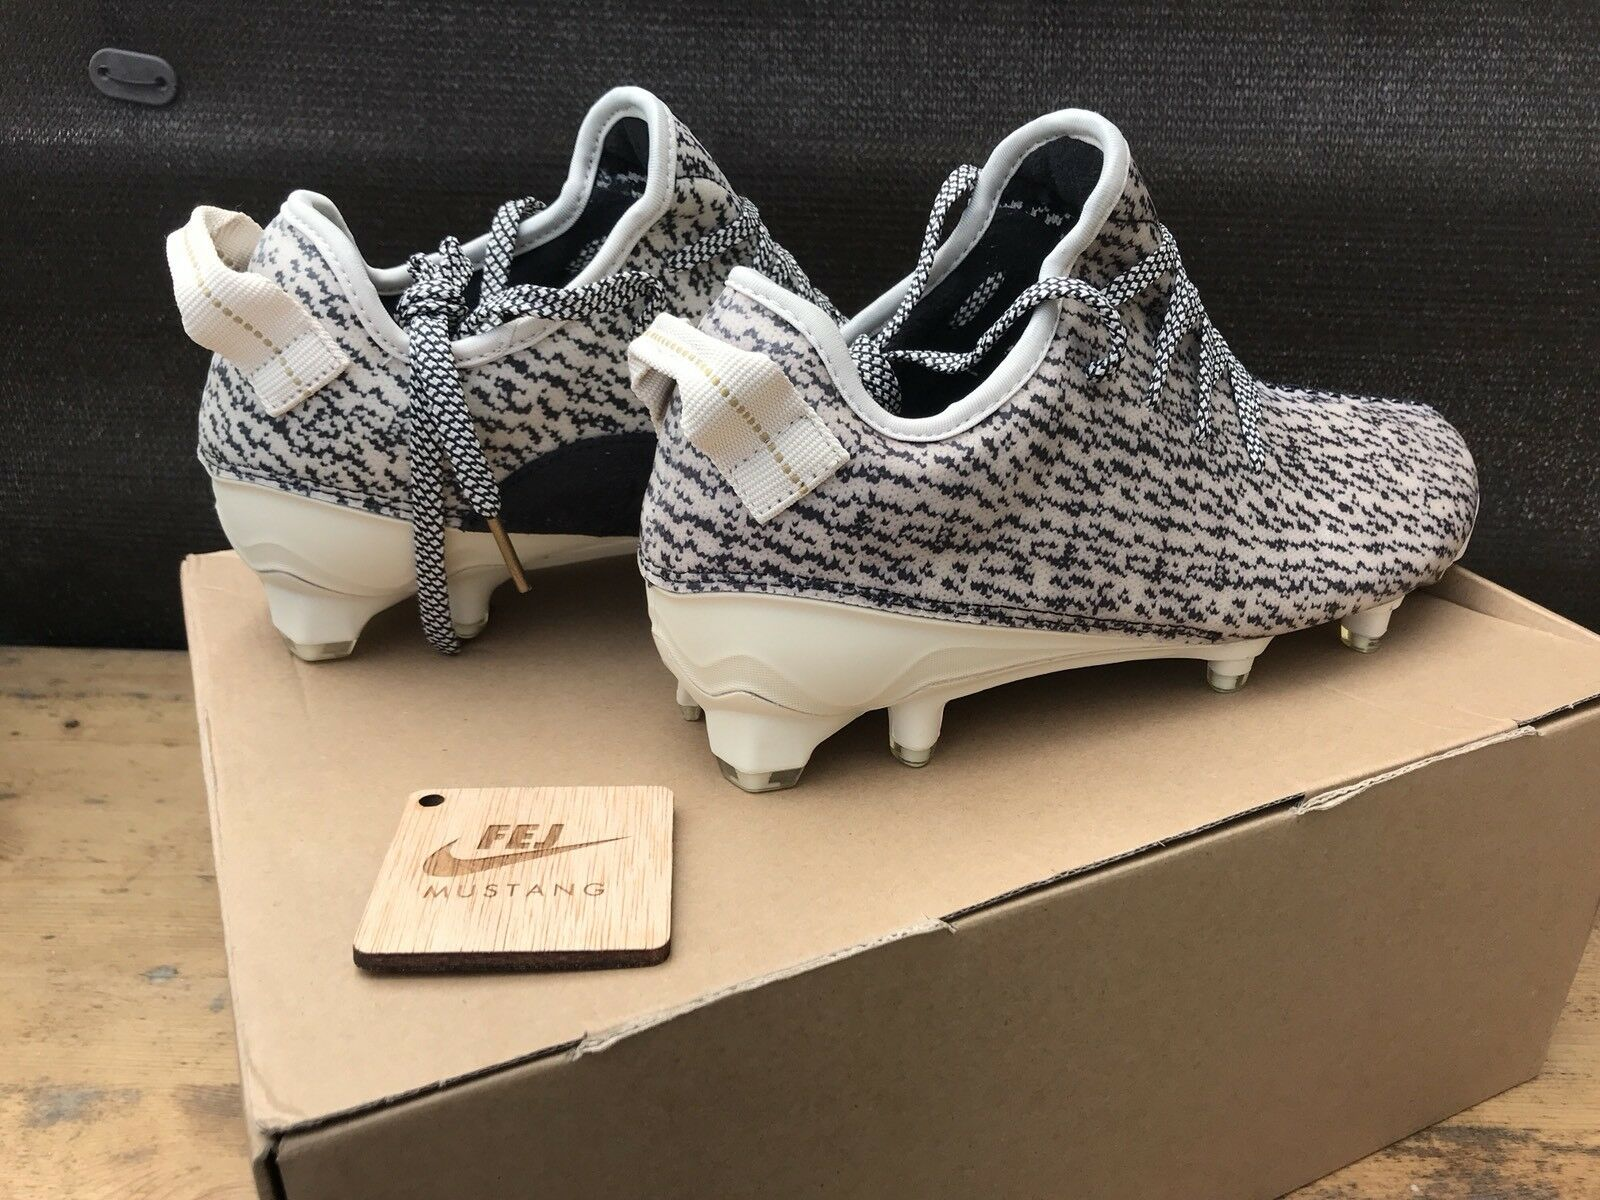 ADIDAS YEEZY 350 CLEAT TURTLE TURTLE TURTLE DOVE Dimensione 9US - 43EU - DS - BRAND NEW - FOOTBALL 6914b2